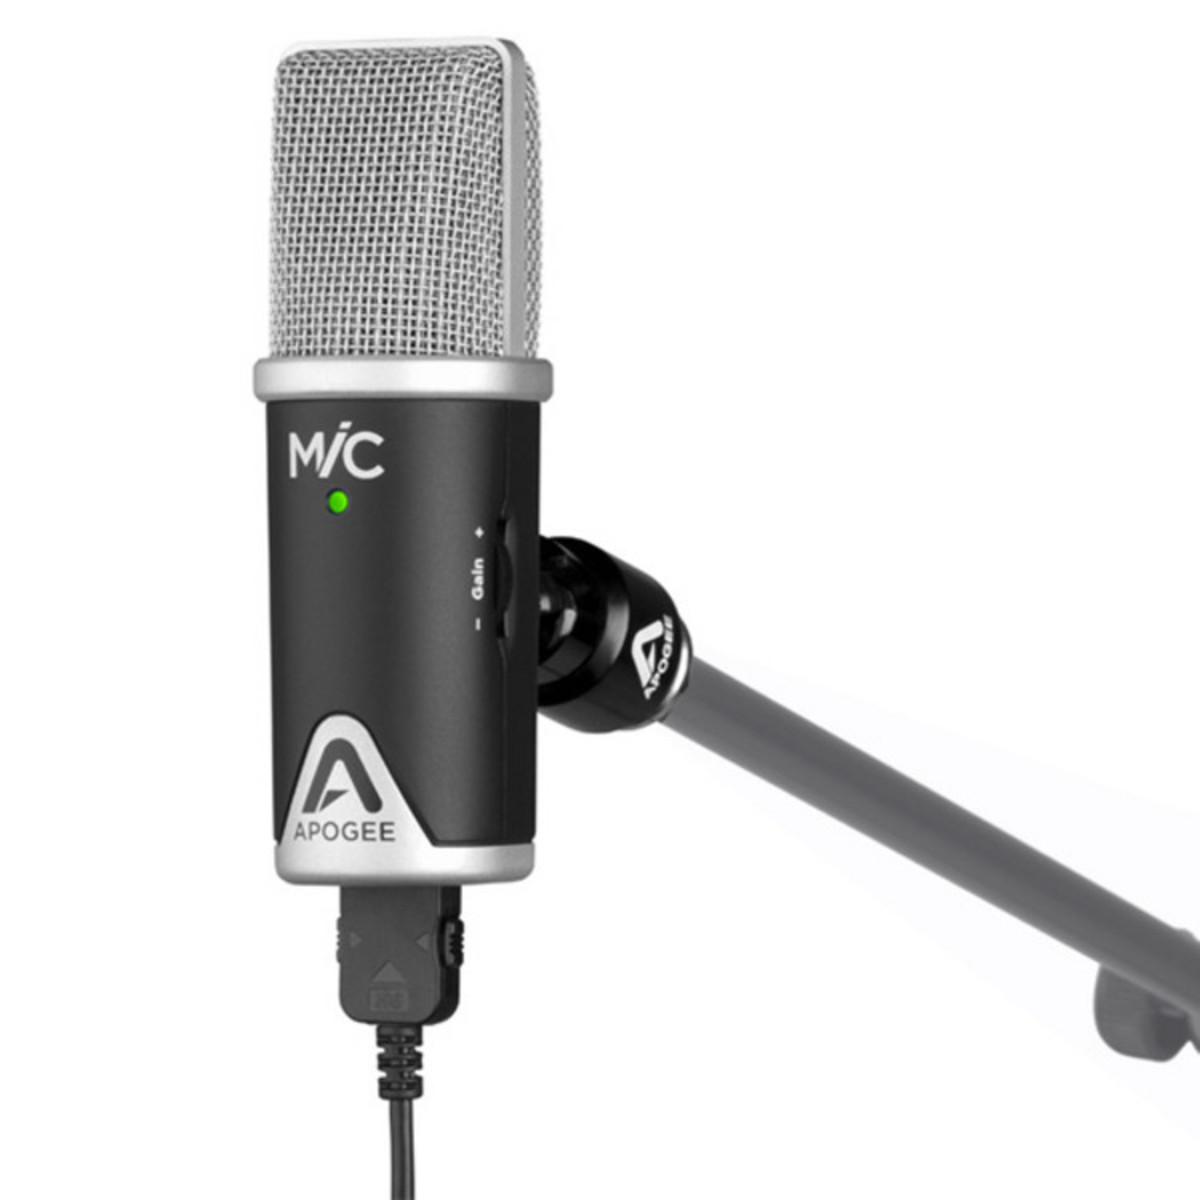 apogee mic 96k usb microphone for ipad iphone and mac at. Black Bedroom Furniture Sets. Home Design Ideas